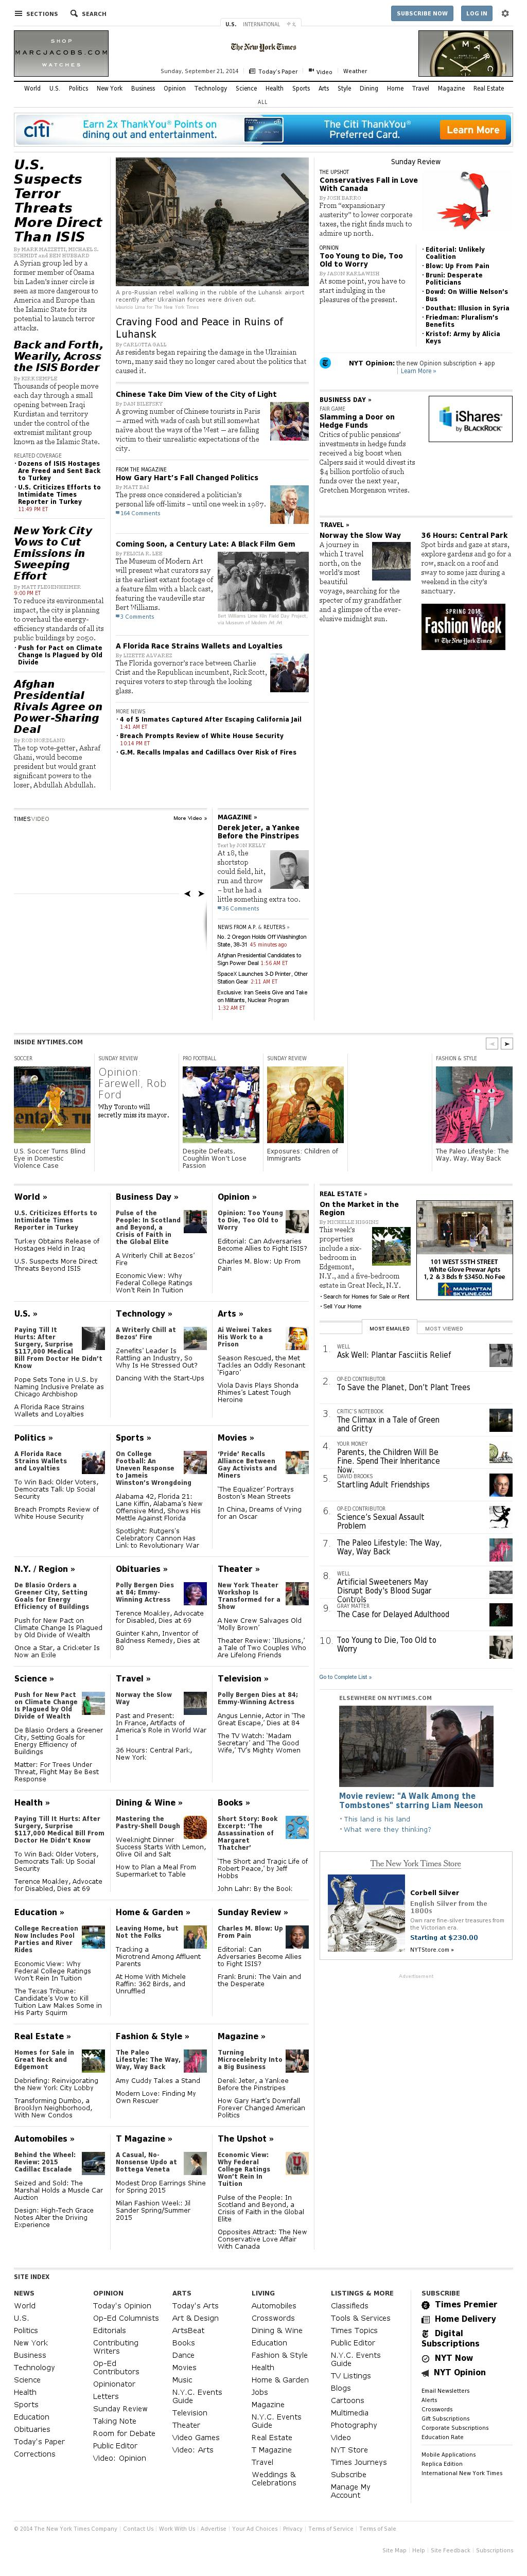 The New York Times at Sunday Sept. 21, 2014, 7:11 a.m. UTC